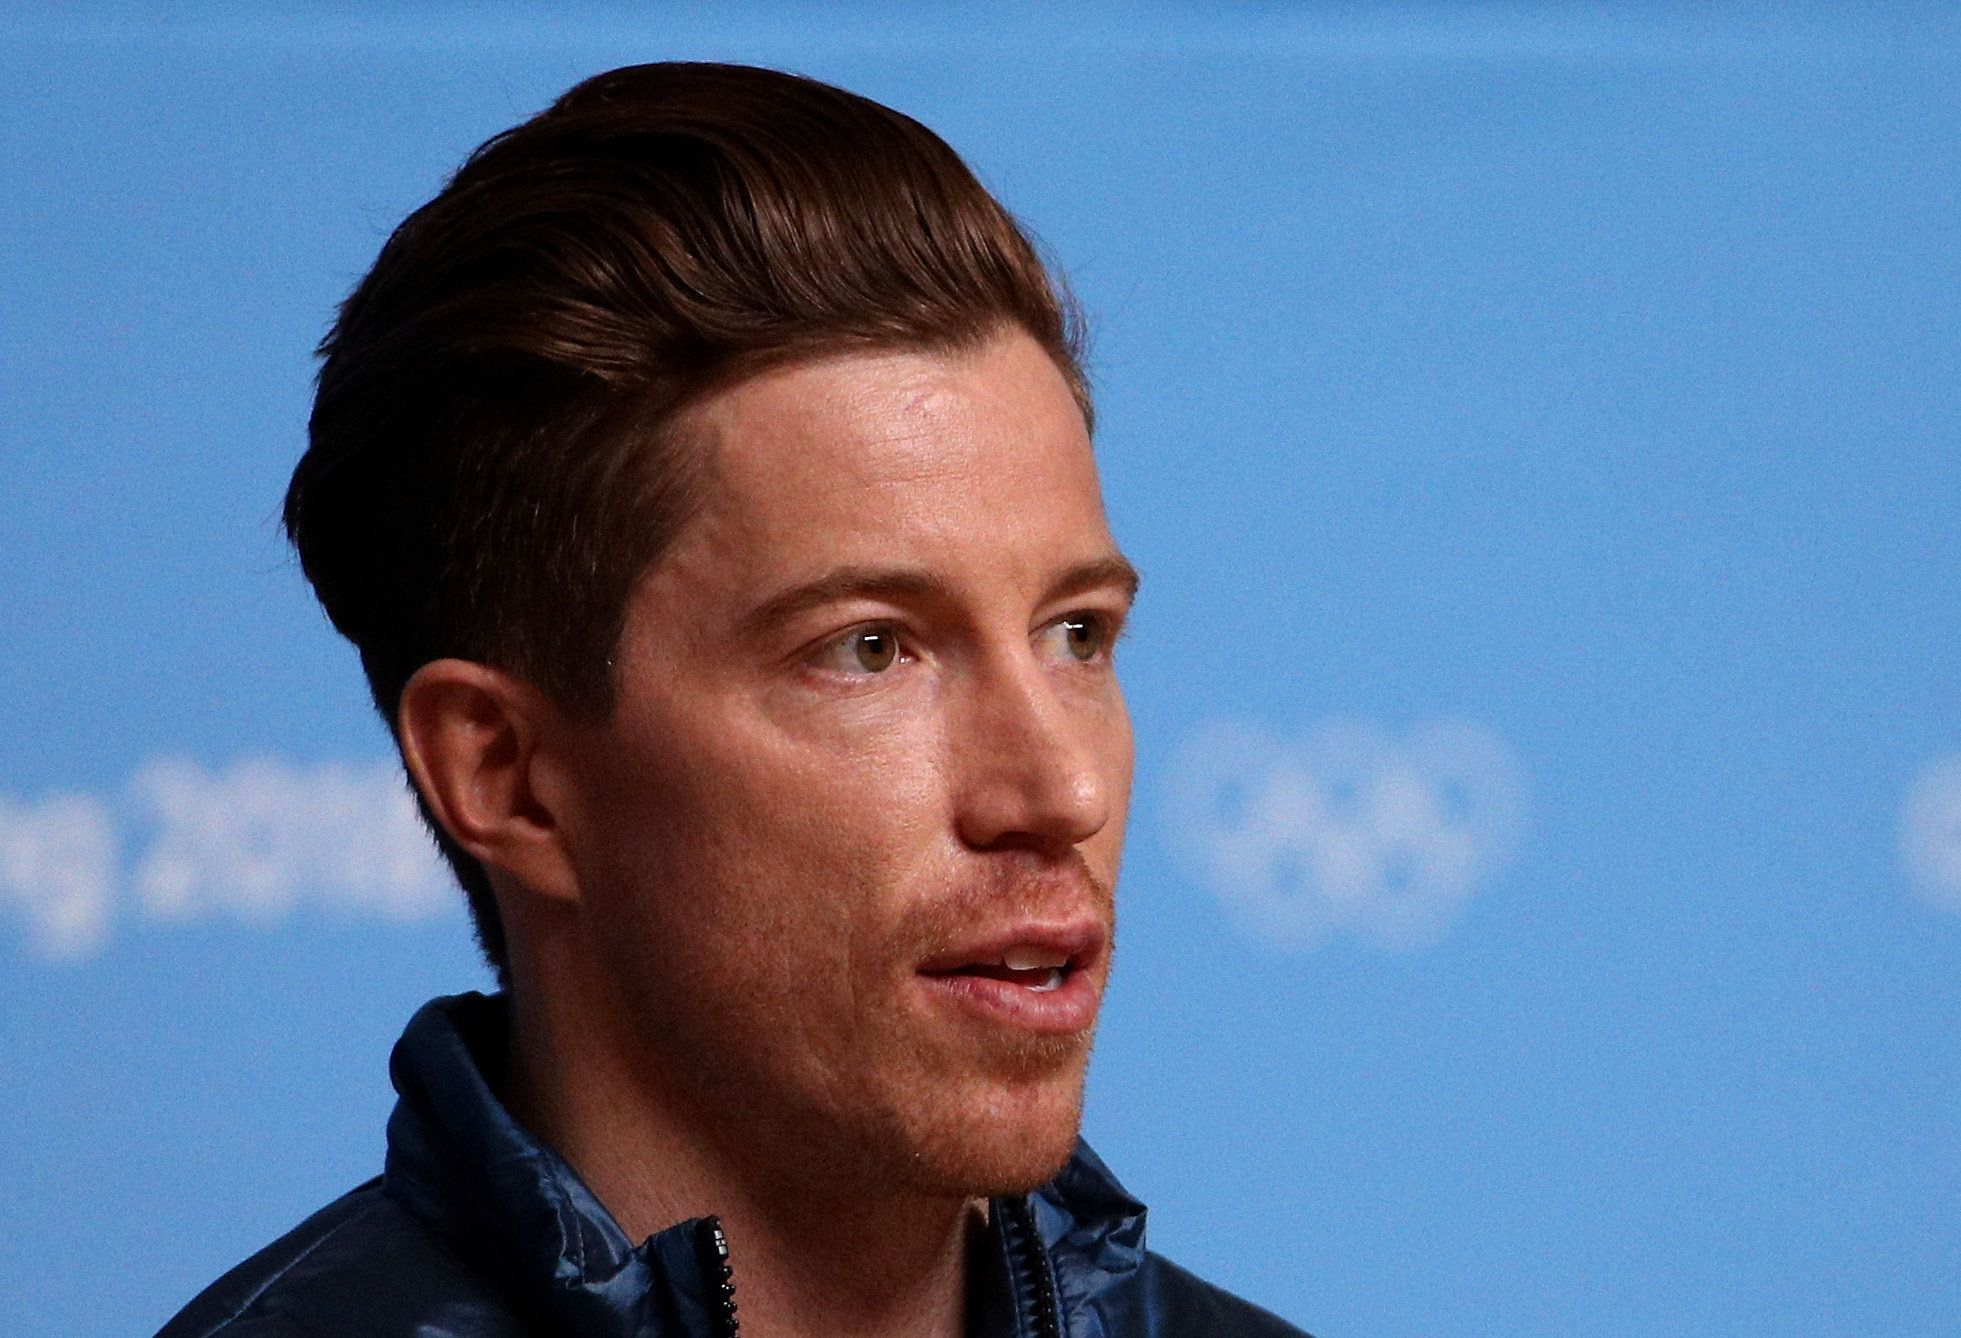 Shaun White Called Out By Accusers Lawyer For Minimizing